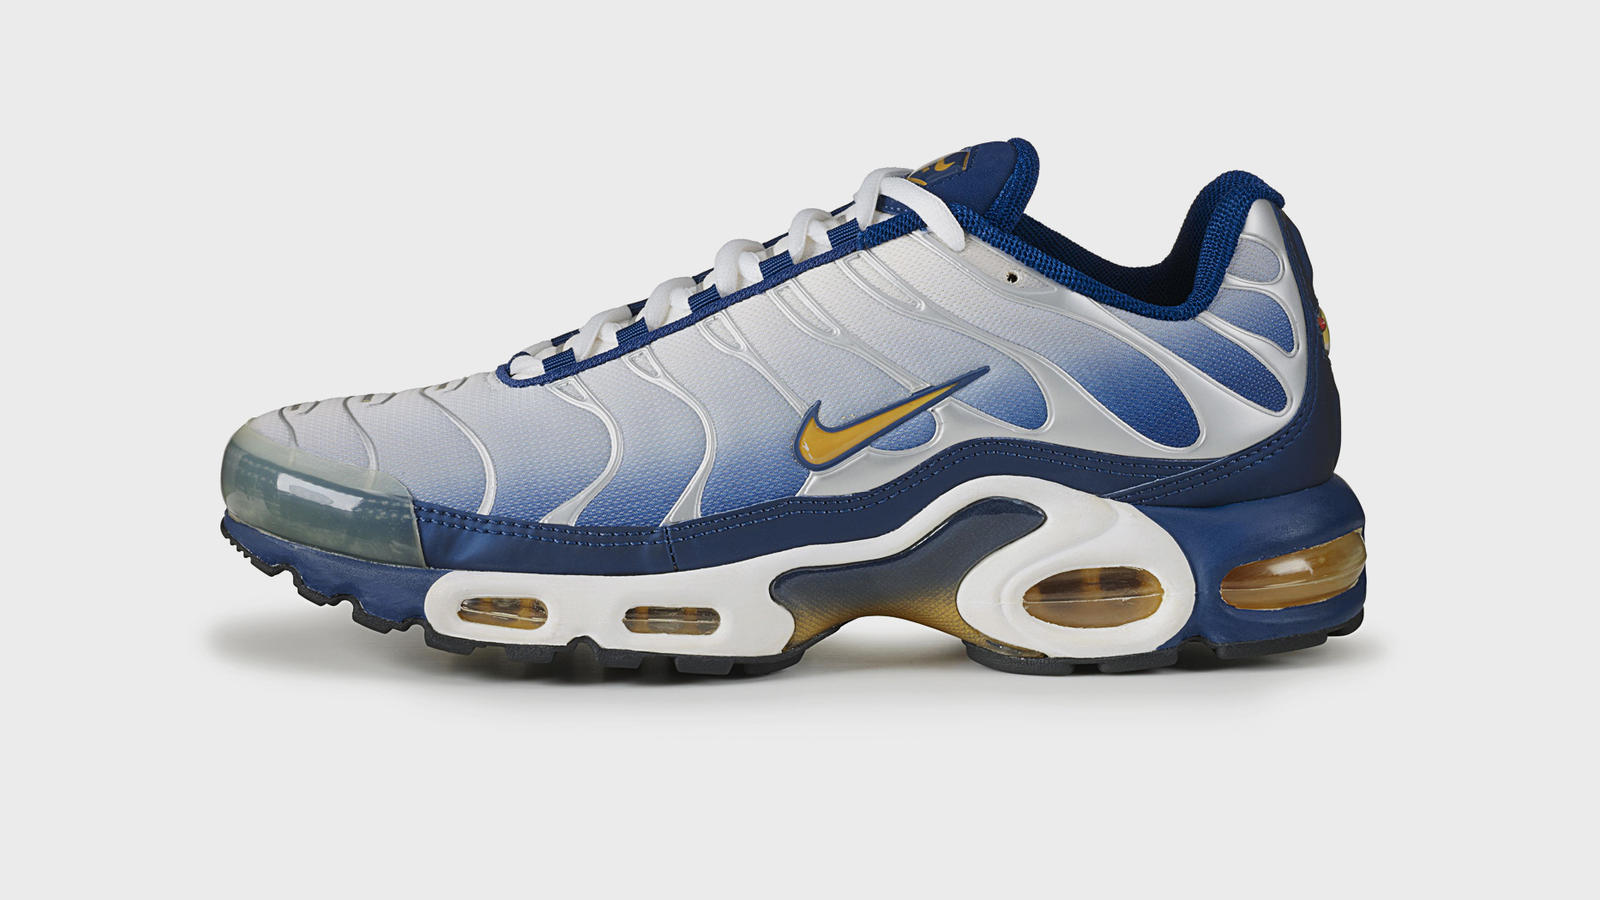 The Untold Story of the Nike Air Max Plus 24 986e9f04ddf7